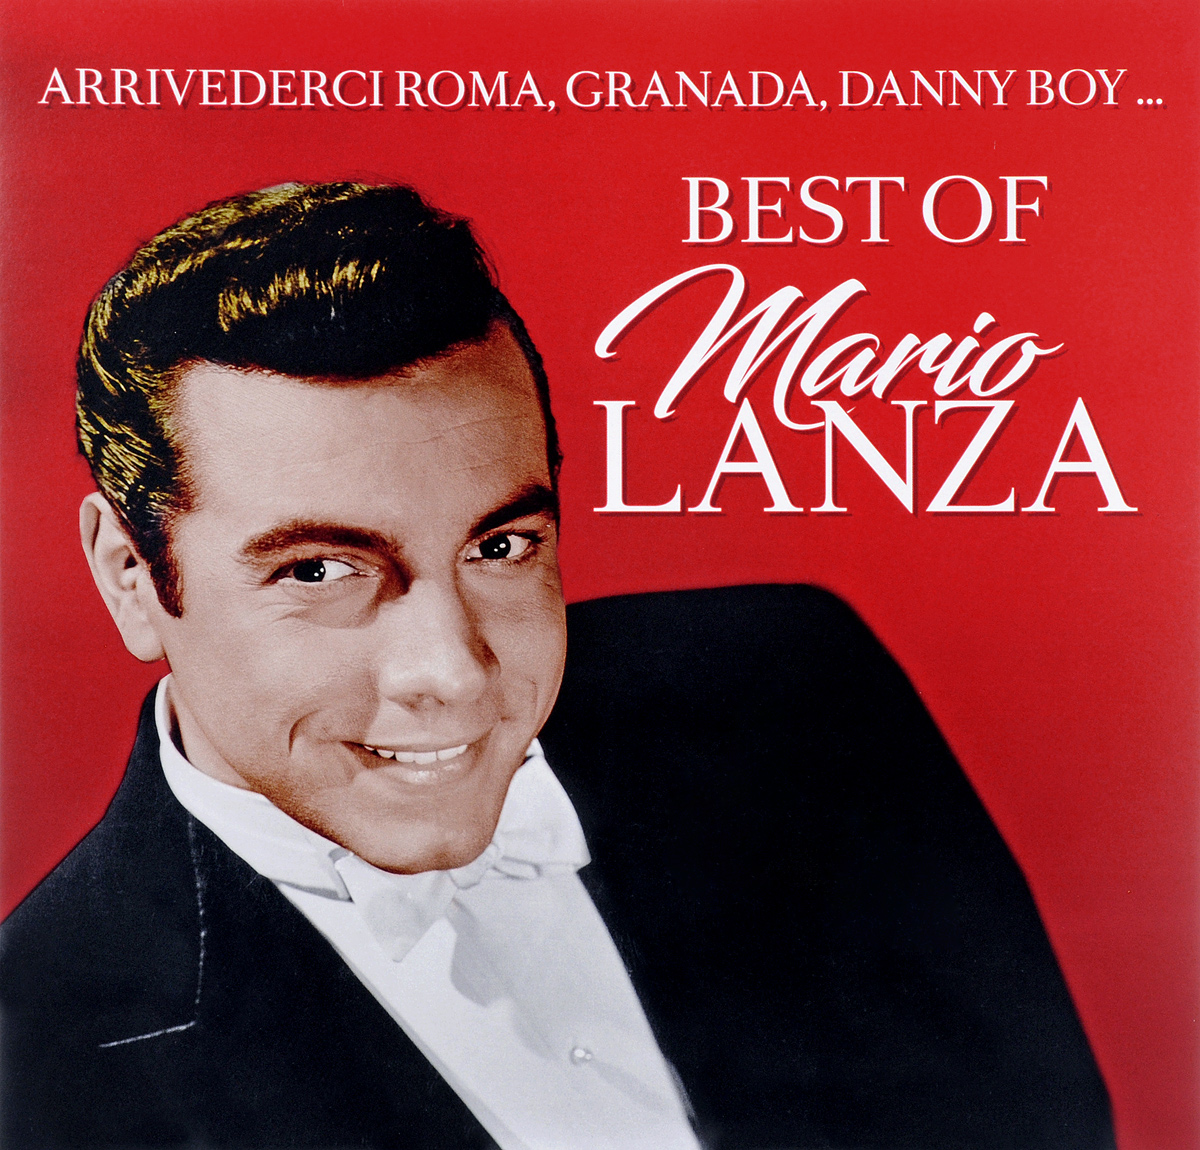 Марио Ланца Mario Lanza. The Best of Mario Lanza (LP) roxy music roxy music the studio albums limited edition 8 lp